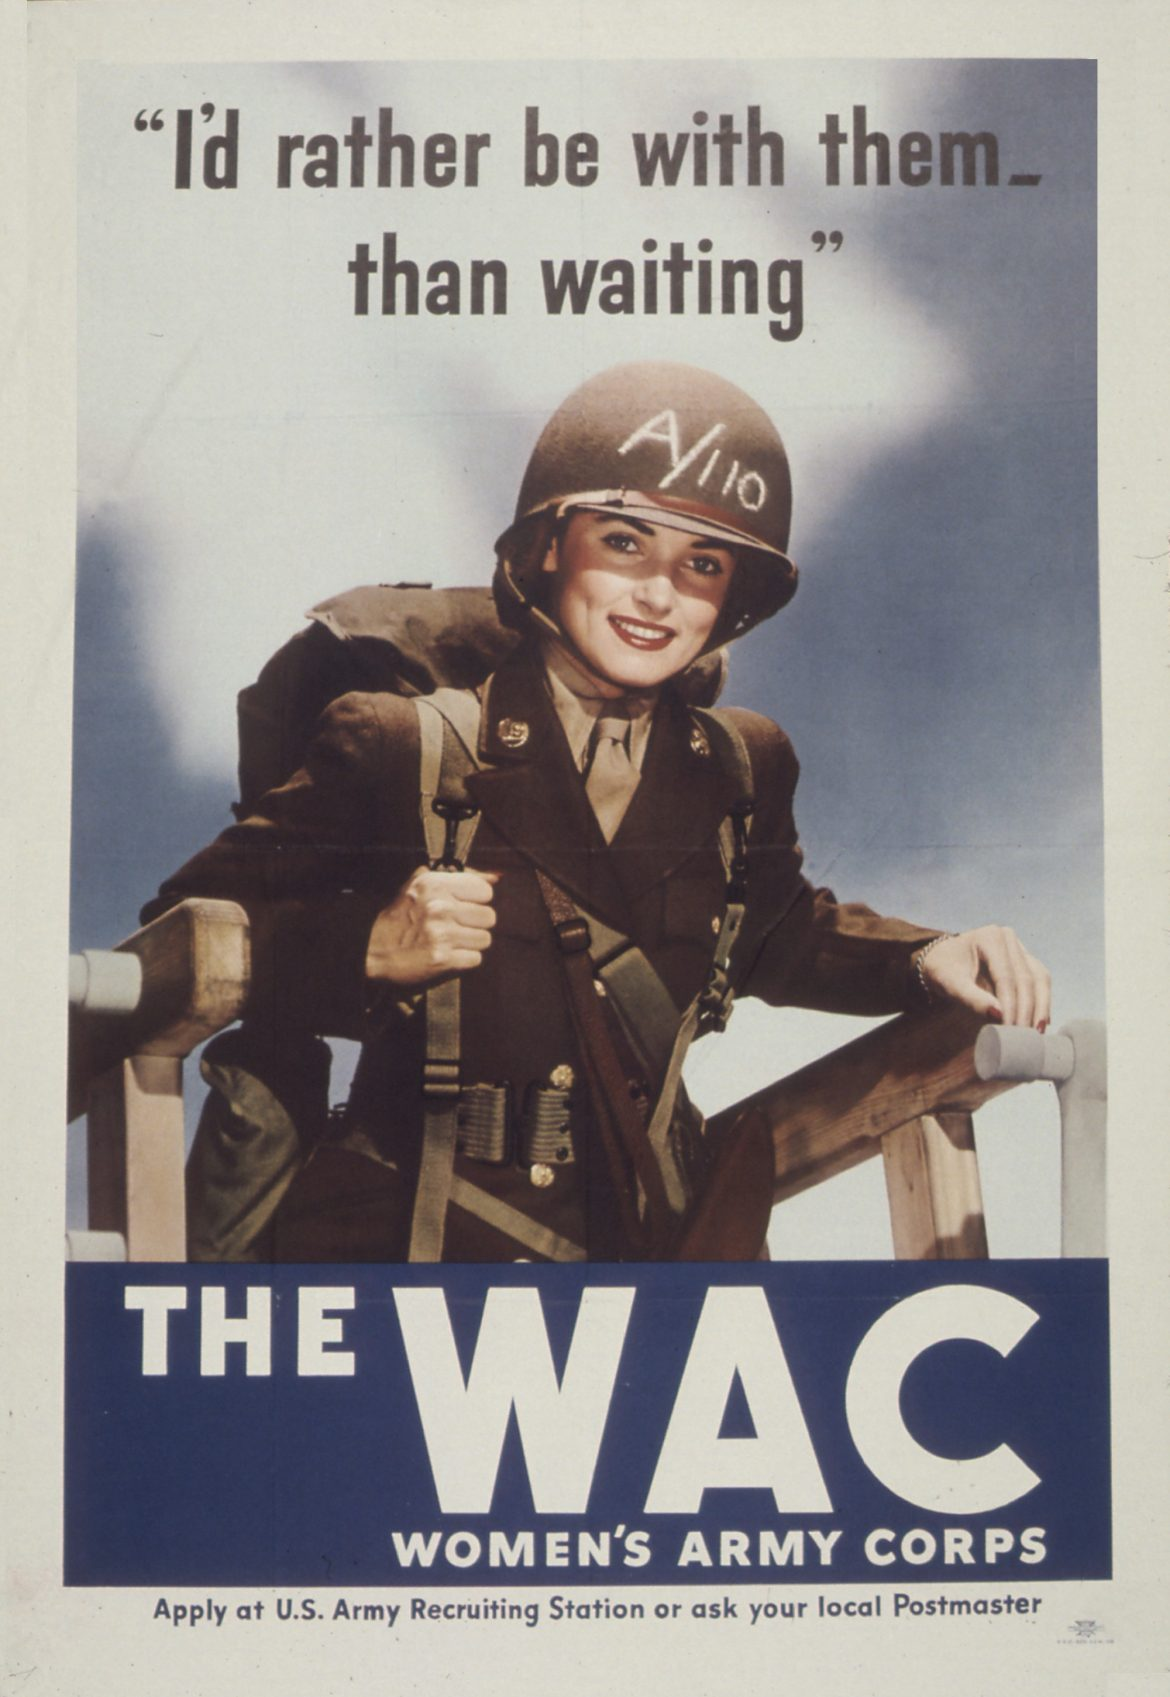 Rather Be With Them WAC Recruiting Poster